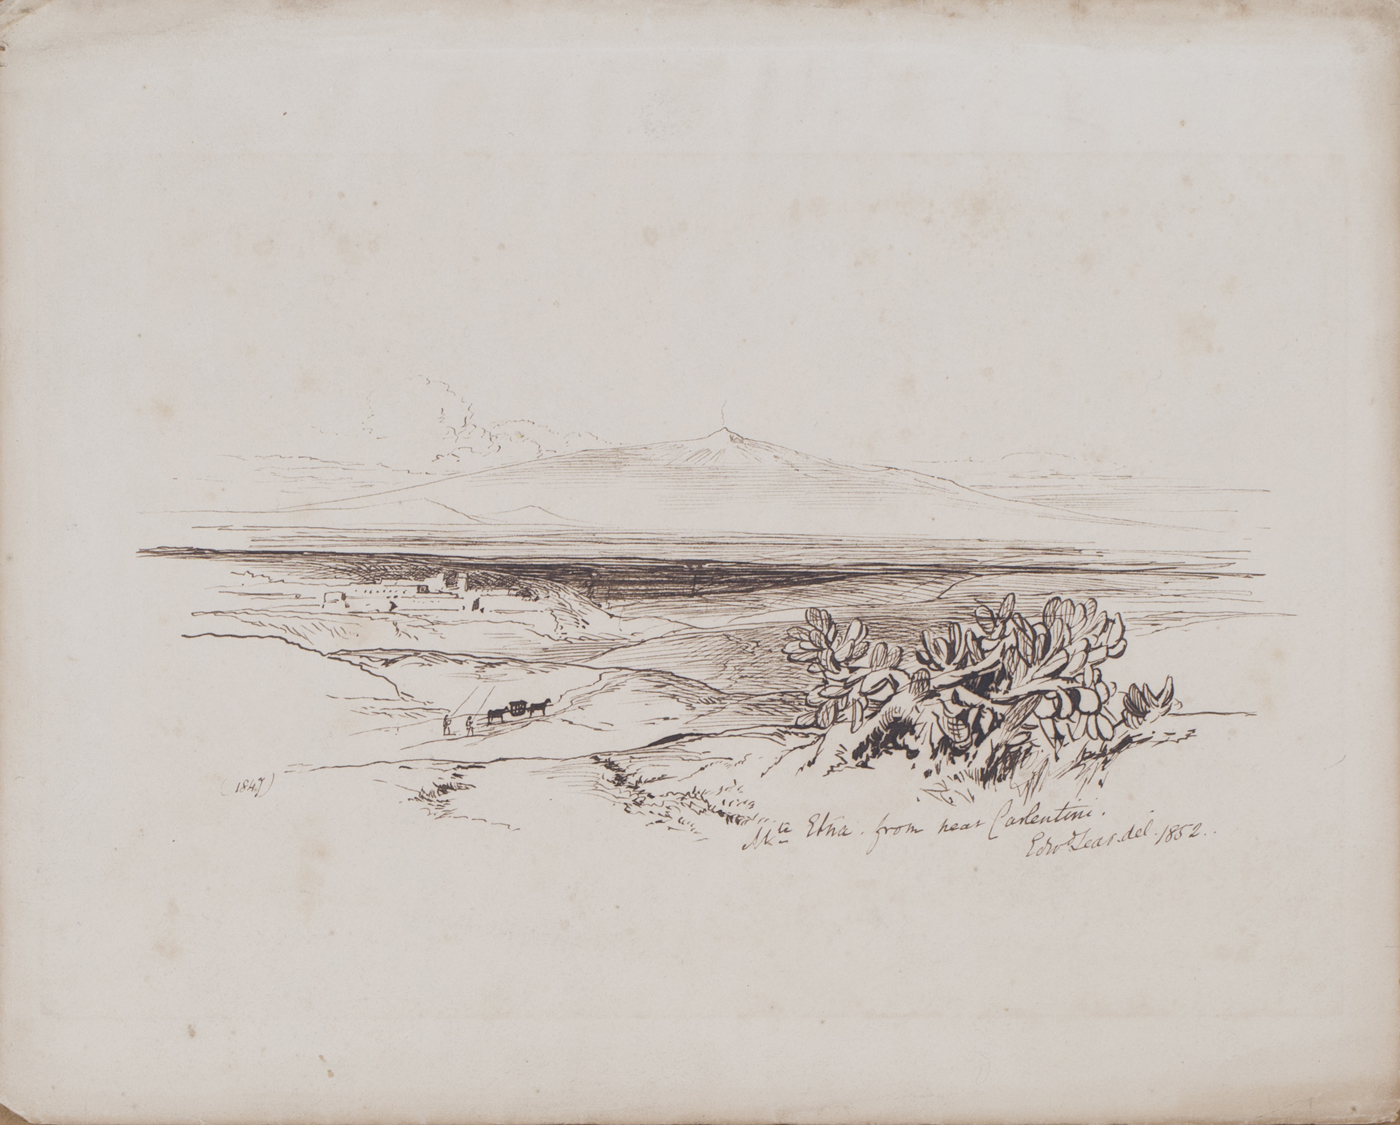 Lot 113 - Edward Lear - 'Mt. Etna from near Carlentini', pen and ink, signed, titled and dated 1852, 23cm x